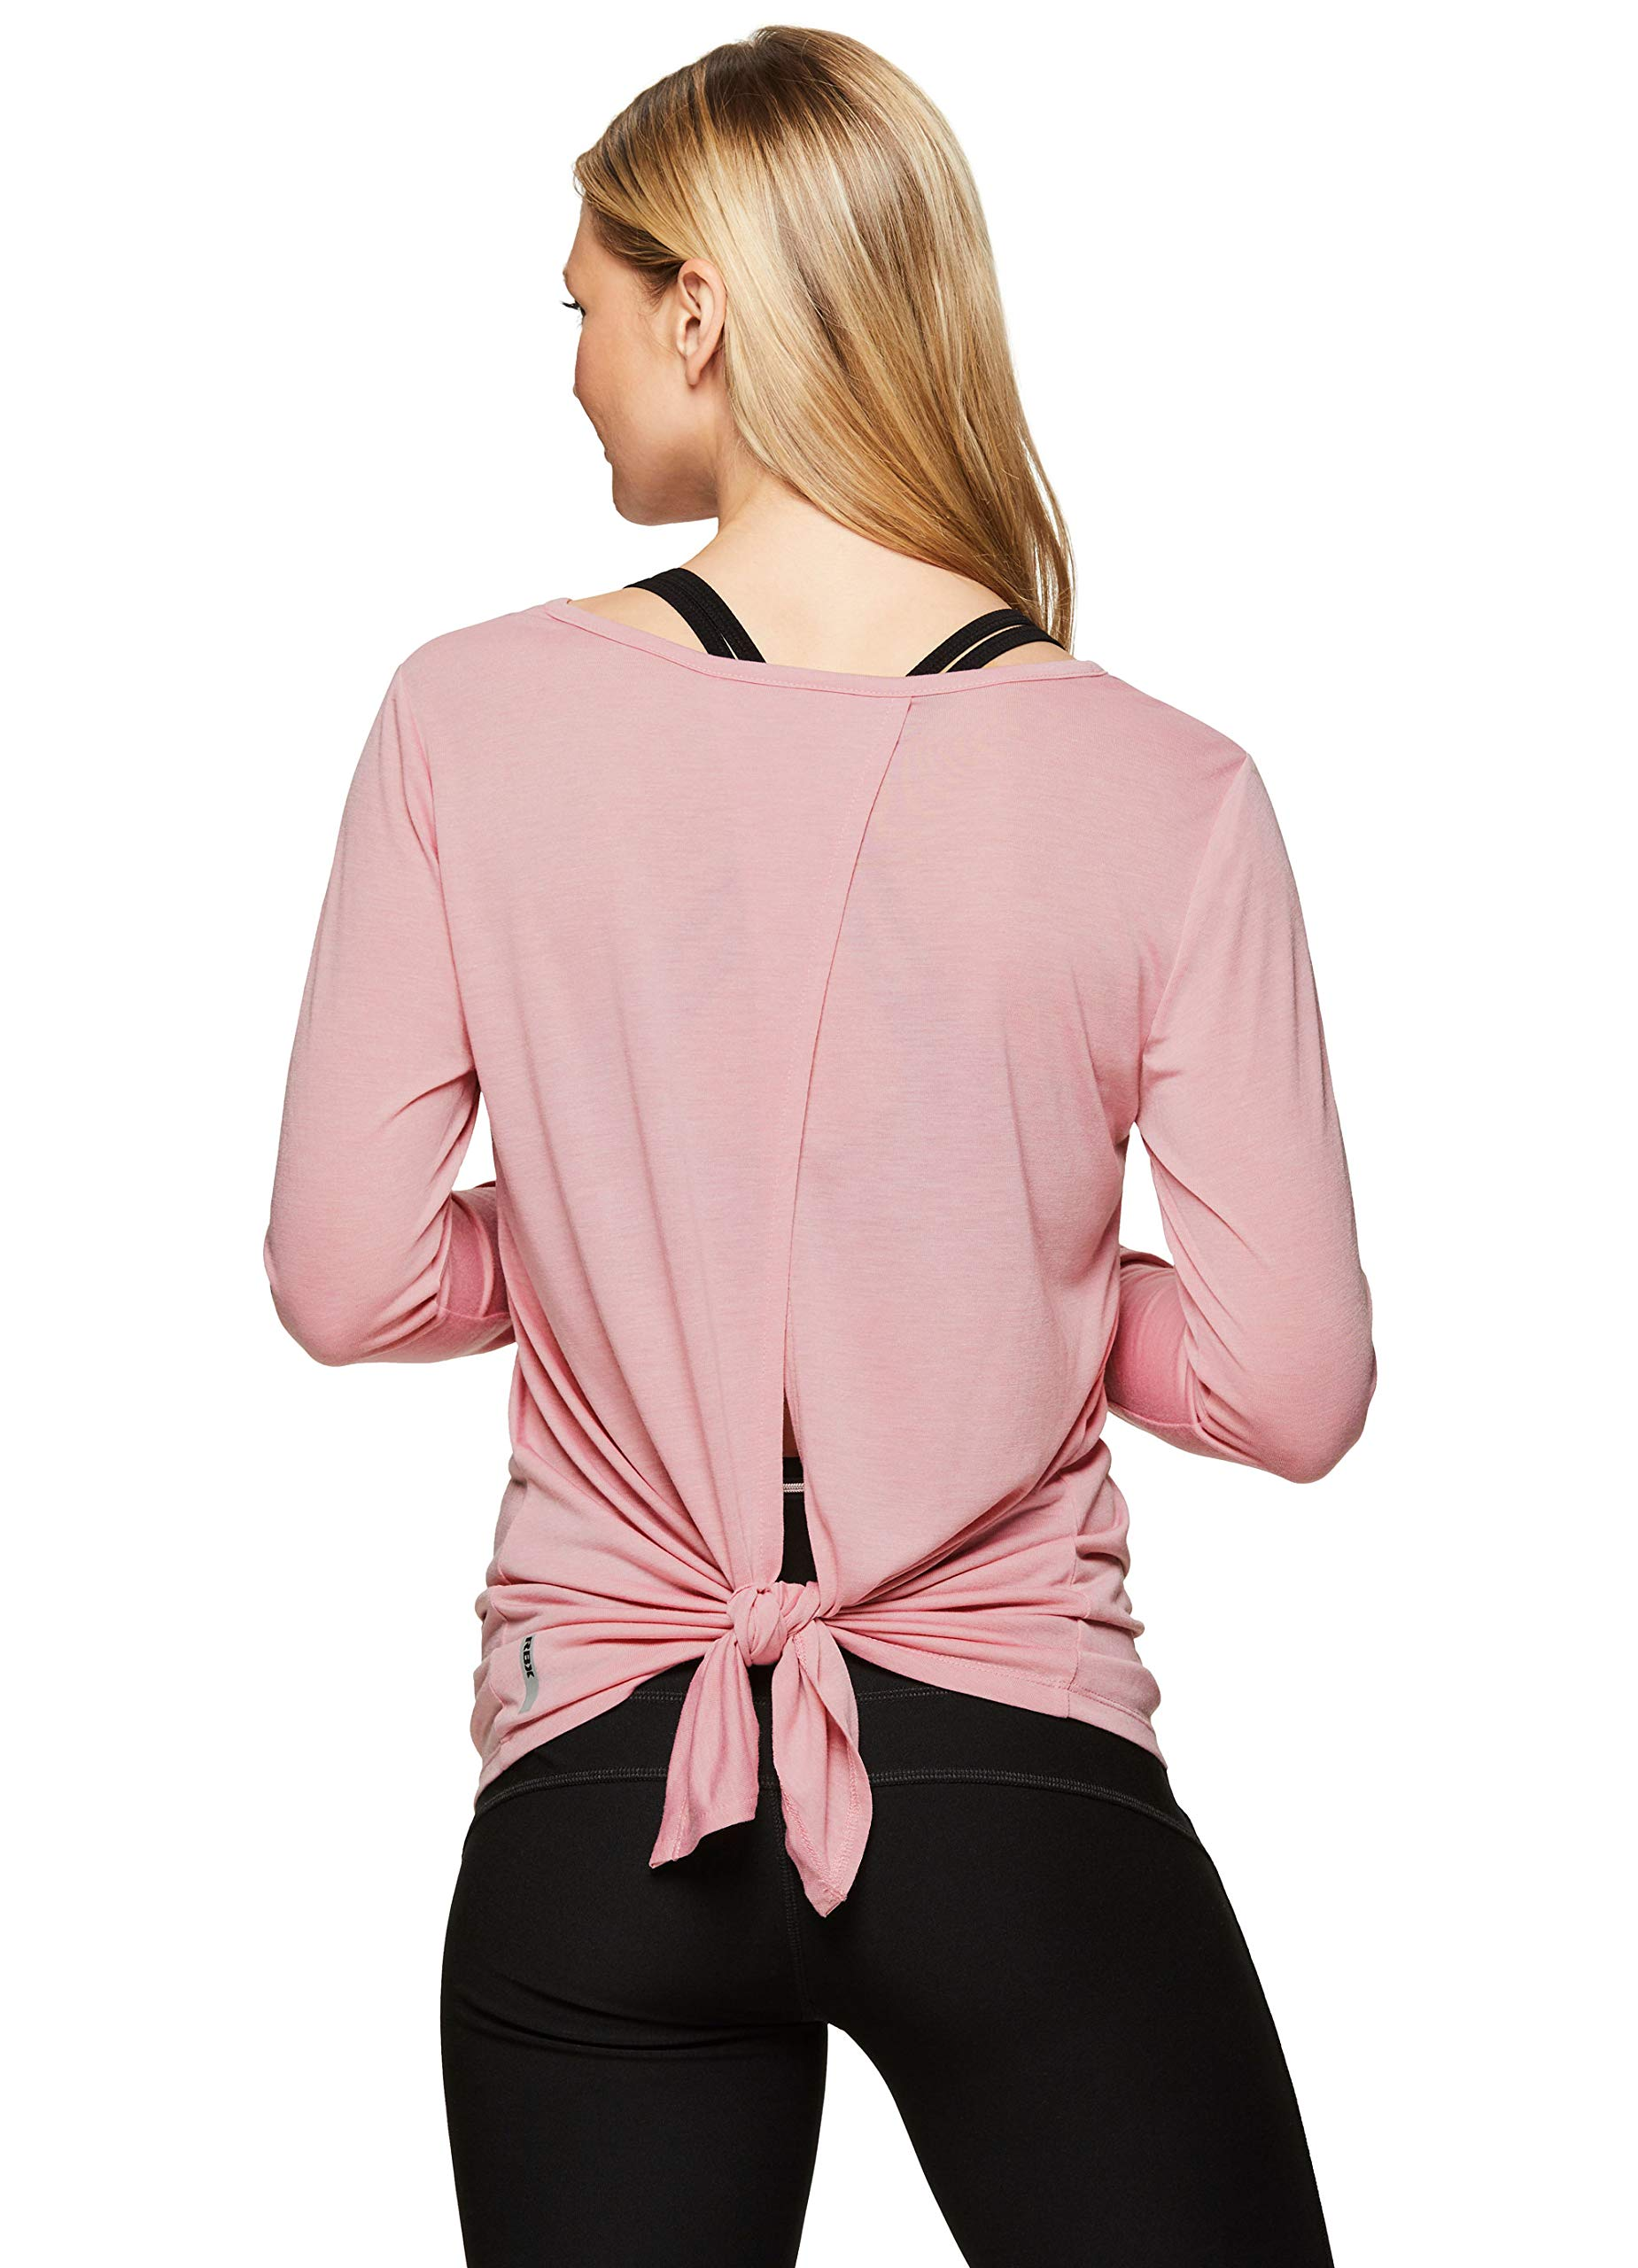 RBX Active Women's Long Sleeve Tie Back Workout Yoga Top